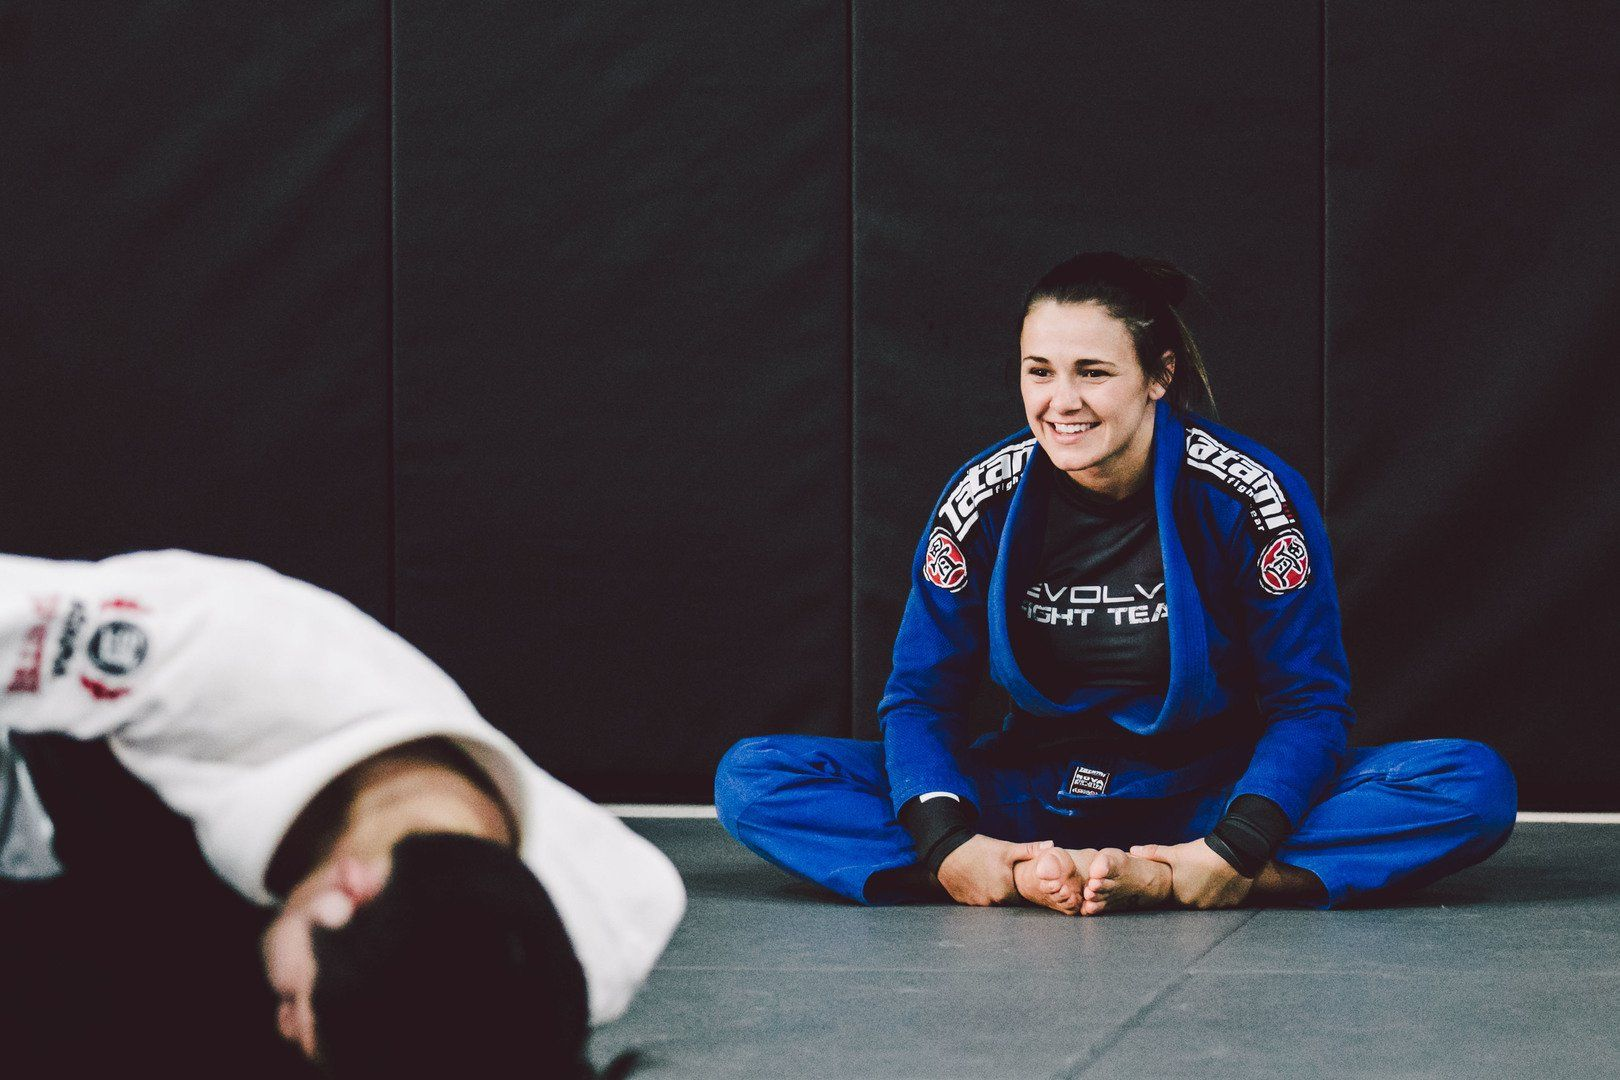 Eight-time BJJ World Champion Michelle Nicolini